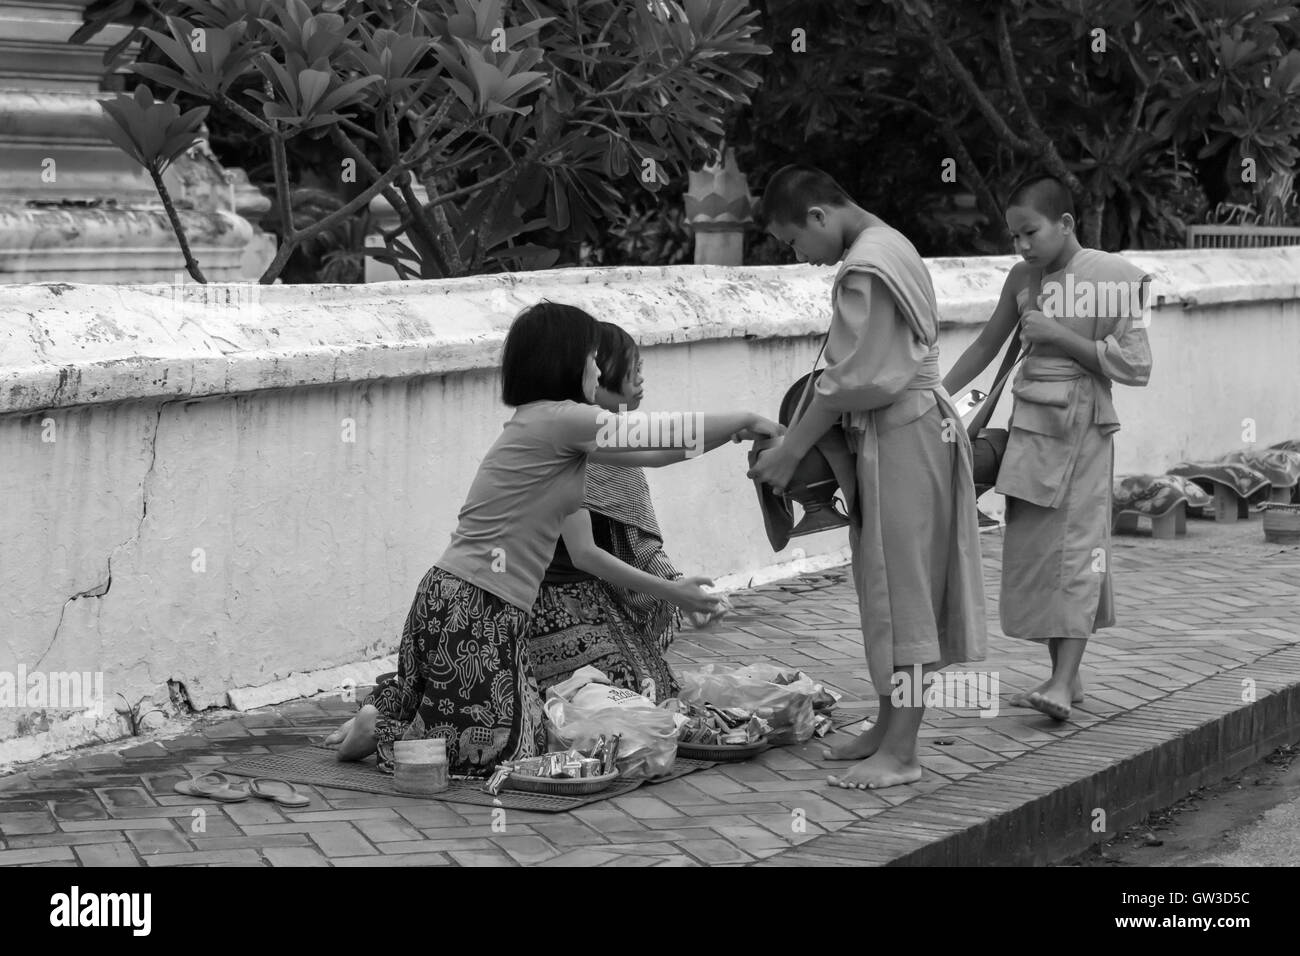 Pre-dawn, young Buddhist monks receive alms from local women, Wat Saen temple, Luang Prabang, Laos Stock Photo